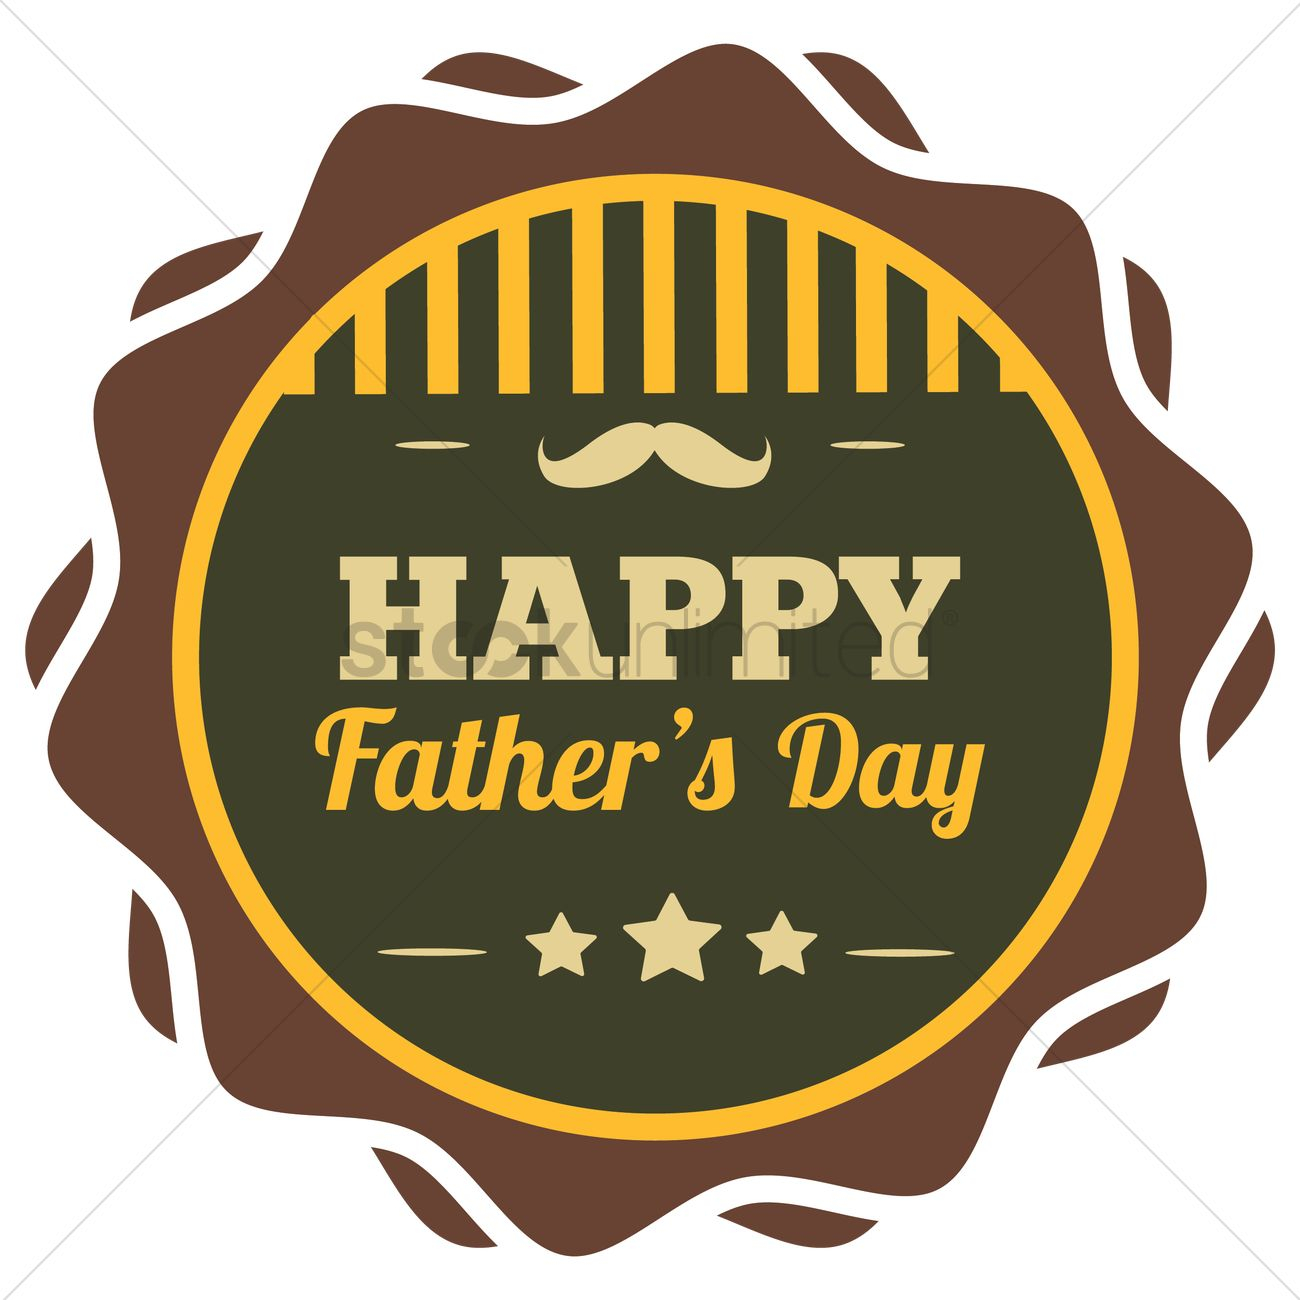 Happy Fathers Day Clipart for free download.